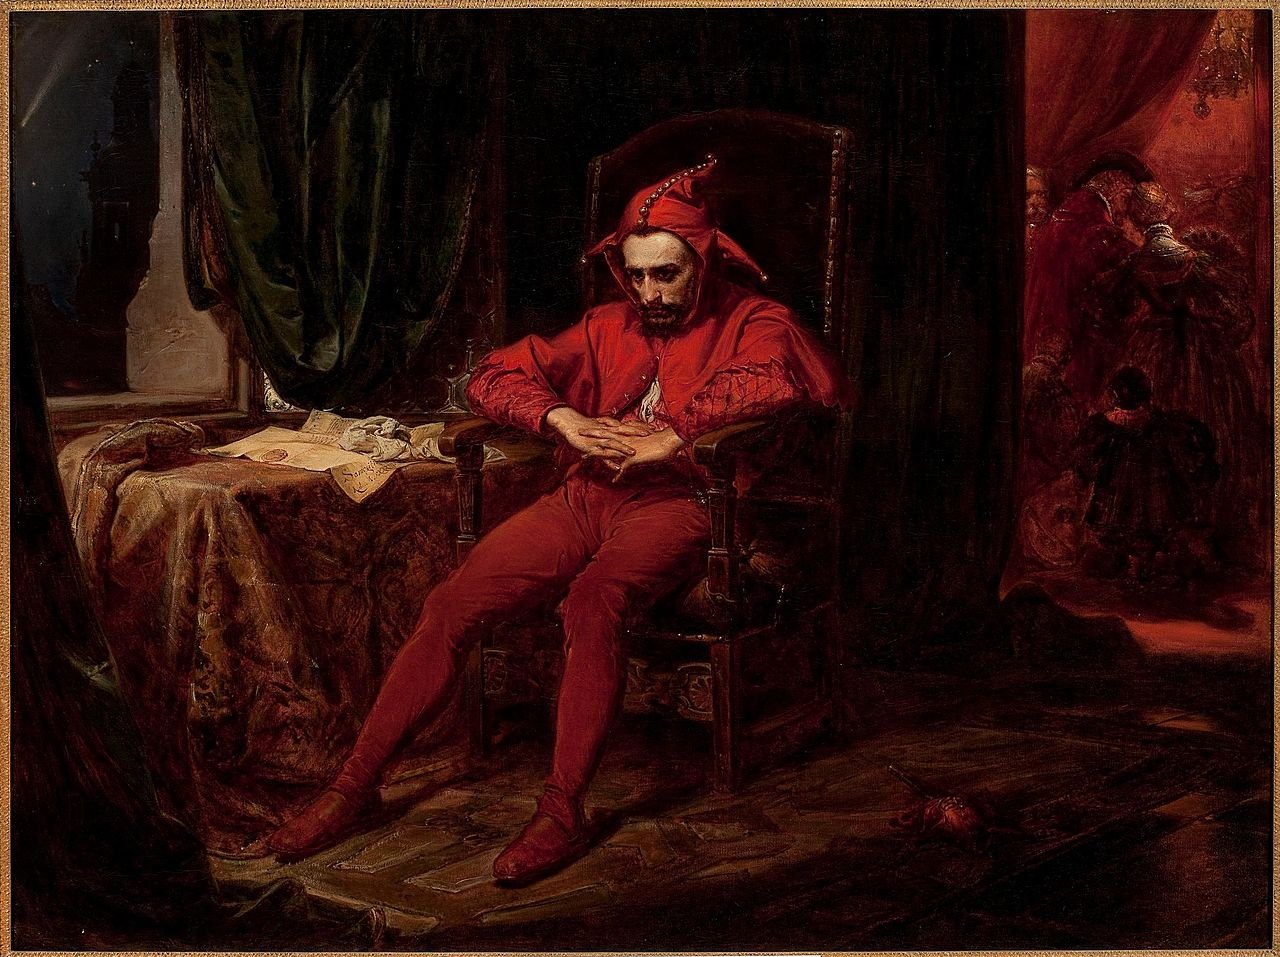 Artist of the Month: Jan Matejko